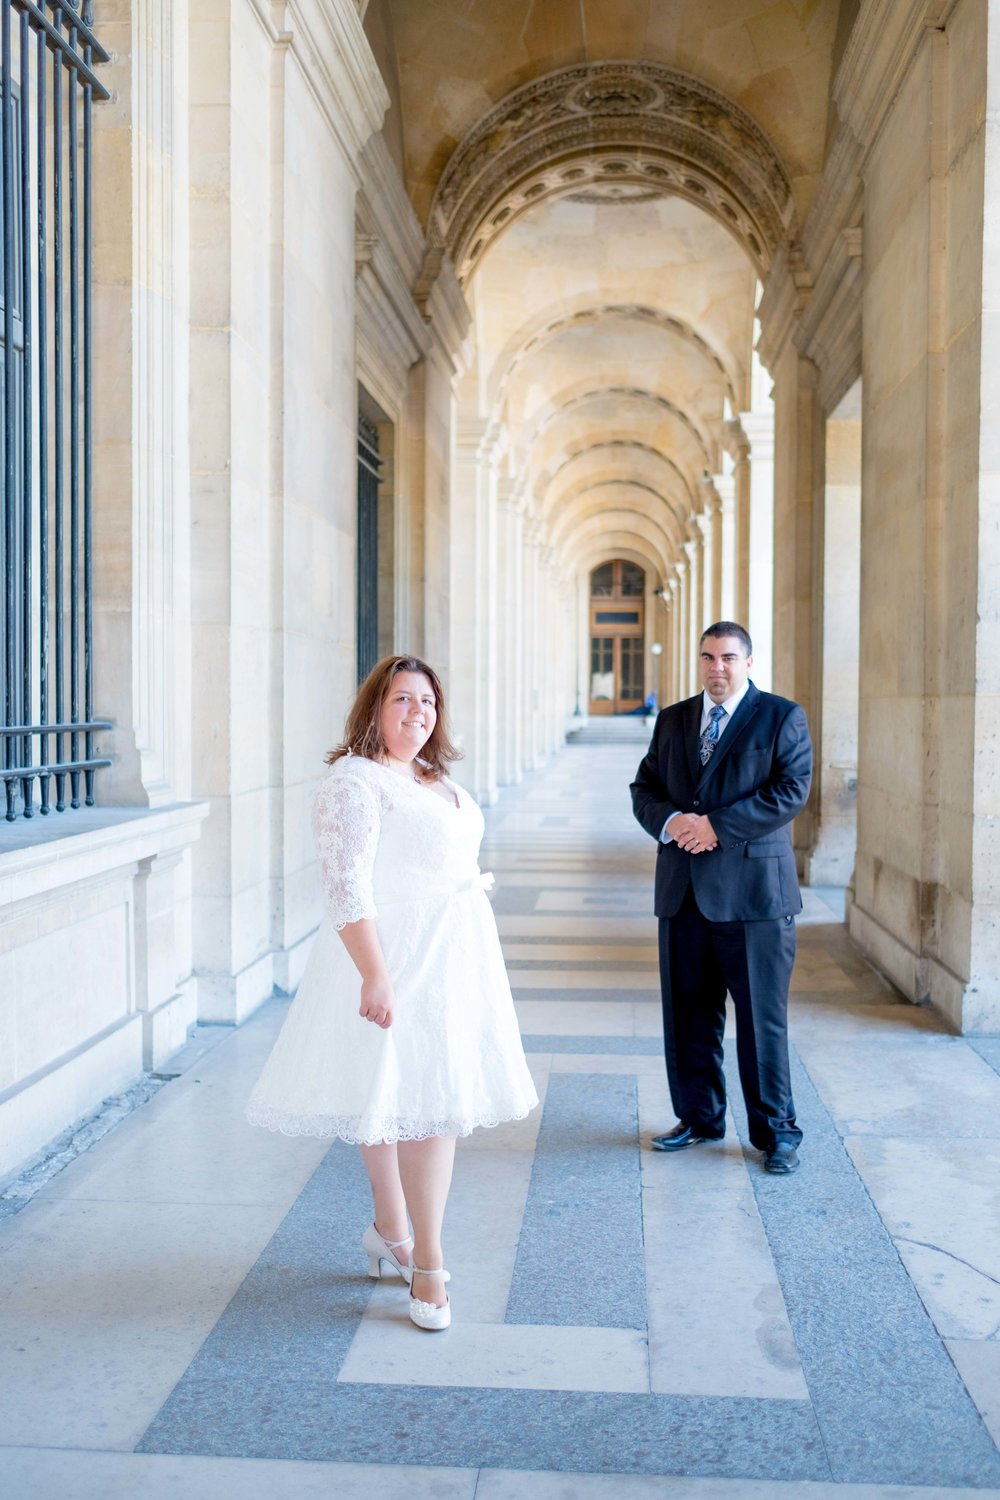 tammy & brian - I had the good fortune to work with these gorgeous newlyweds to capture their time in Paris. They both looked so sharp, and I loved the detail on Tammy's dress. They were sweet and funny and a joy to photograph! I wish them so much happiness in their married life.See more images below